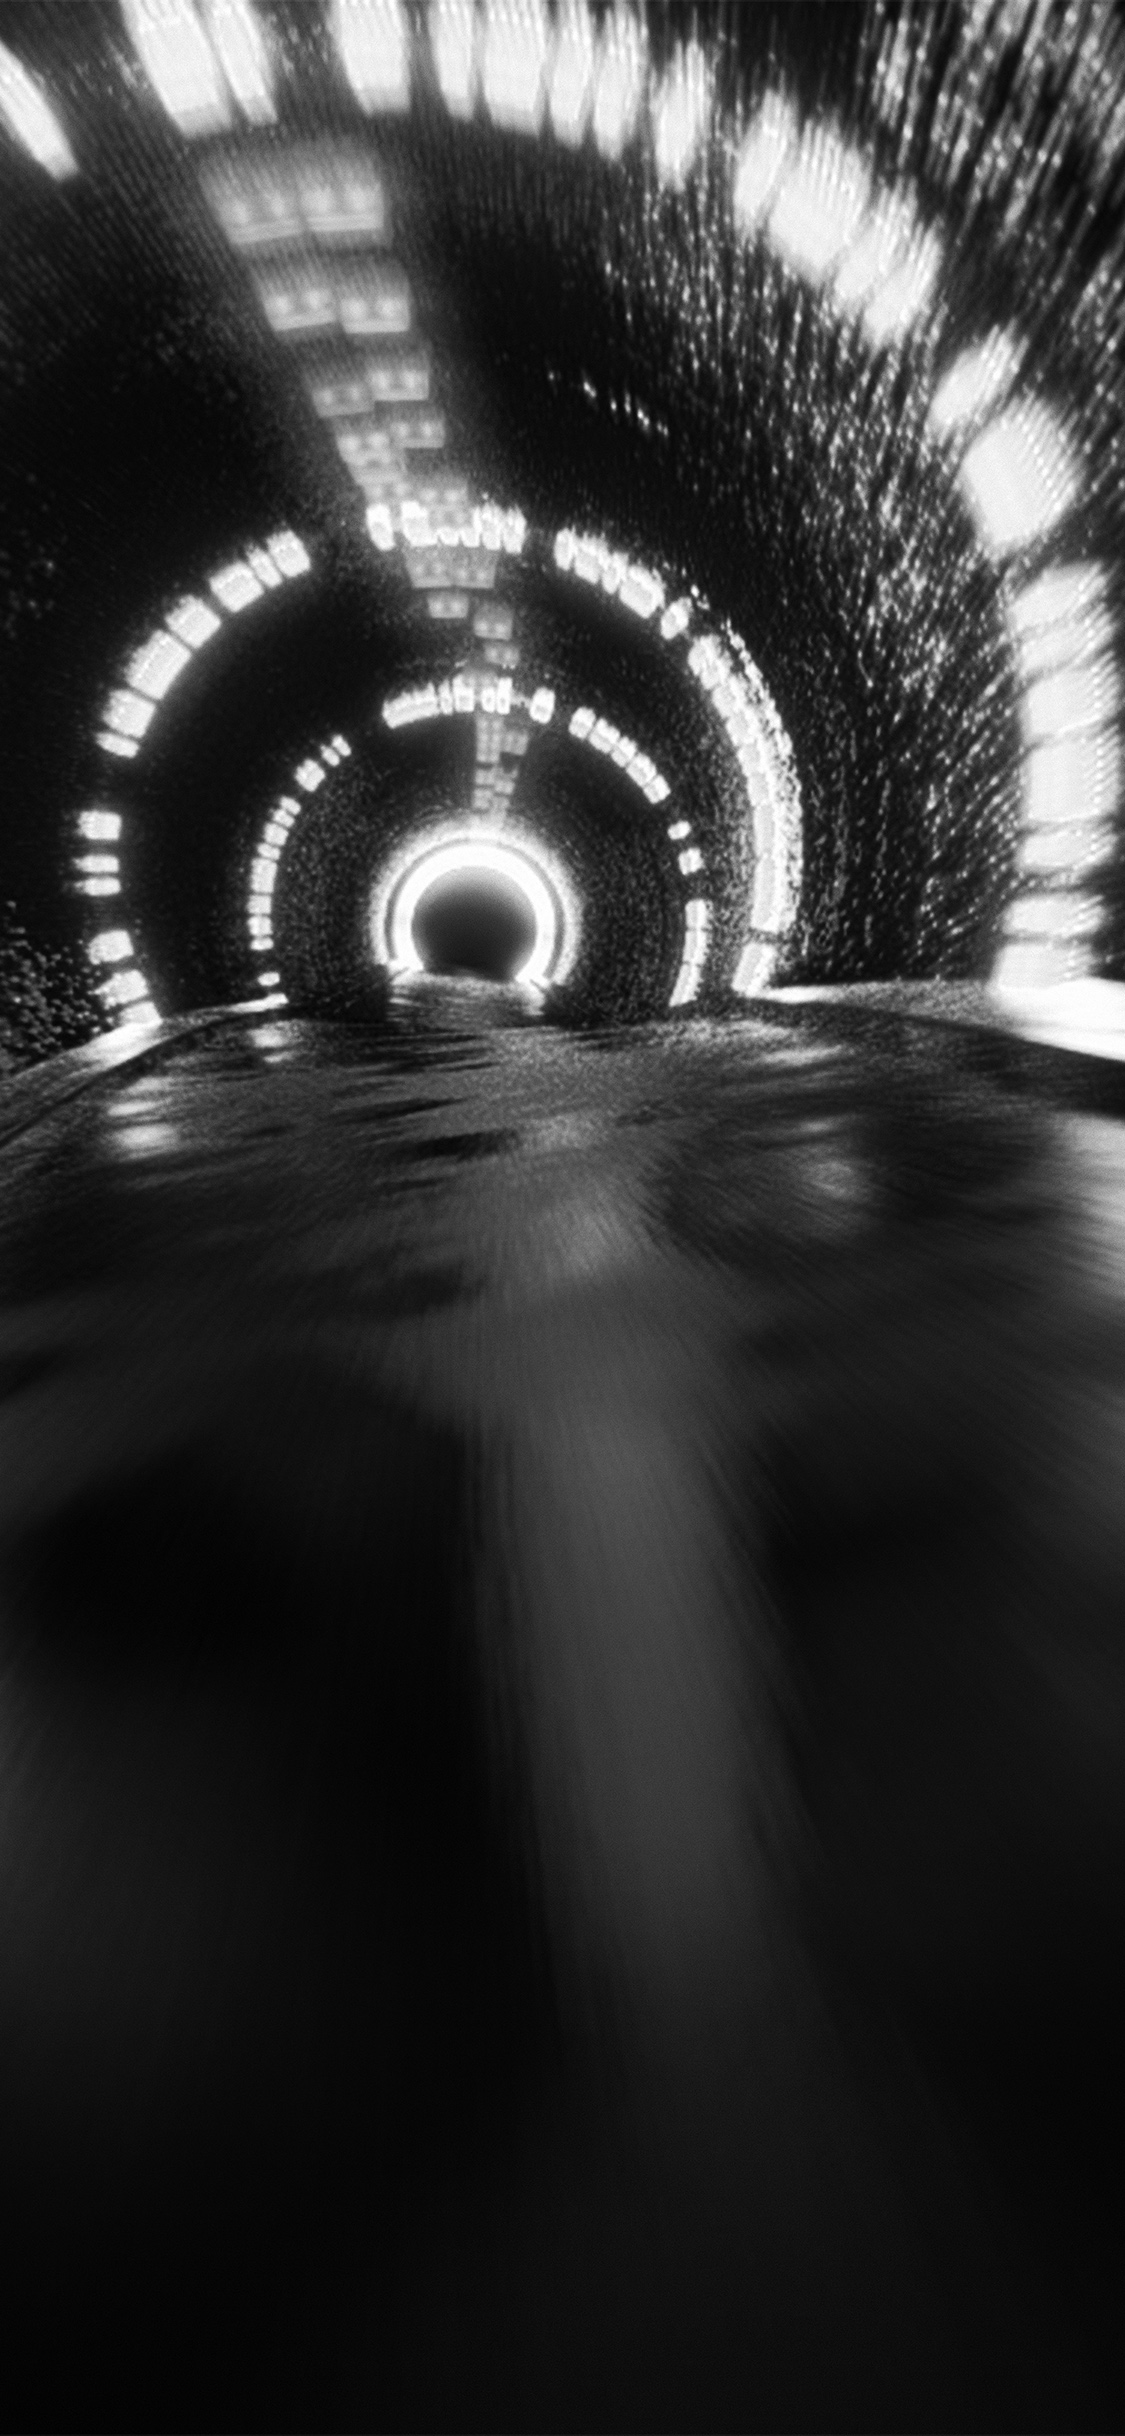 iPhonexpapers.com-Apple-iPhone-wallpaper-vv71-tunnel-car-dark-drive-pattern-background-bw